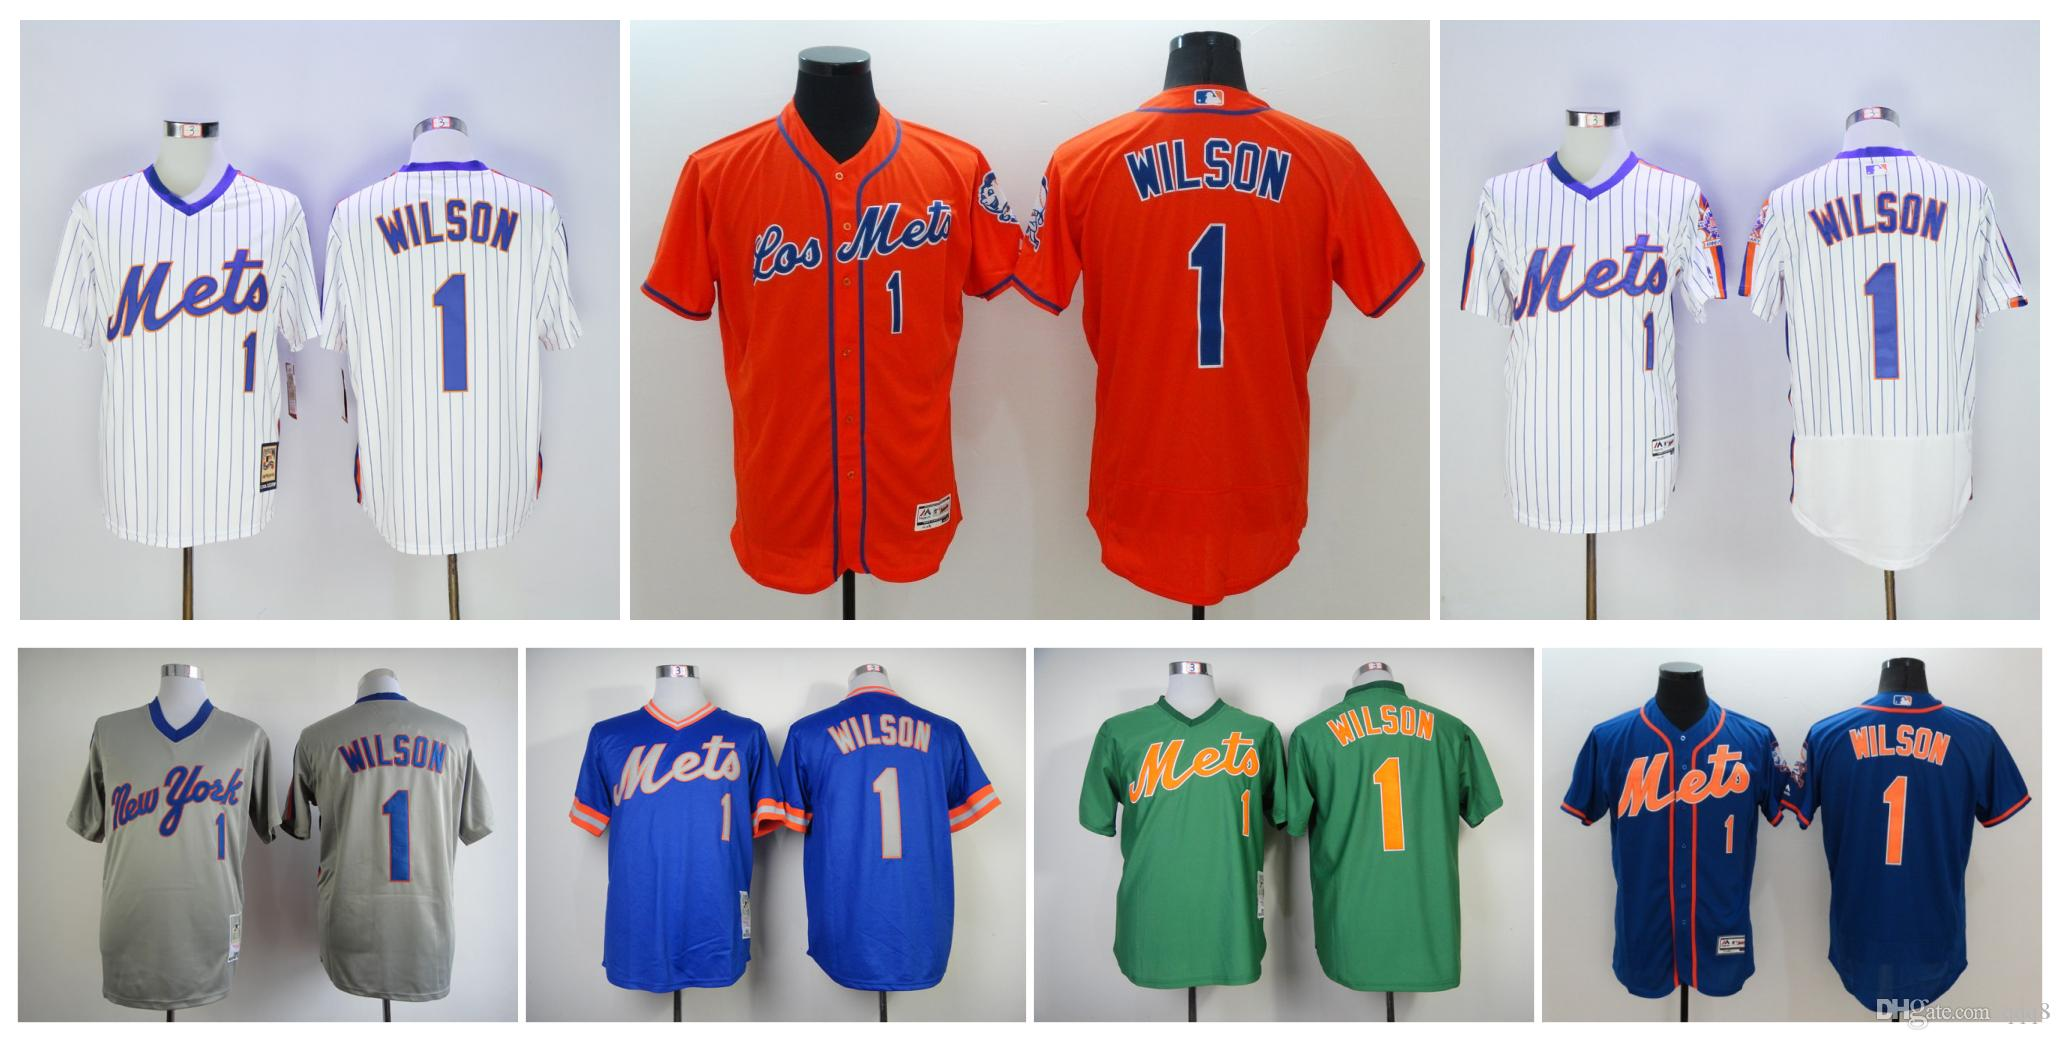 promo code 12df6 8a149 new york mets 1 mookie wilson 1983 blue throwback jersey